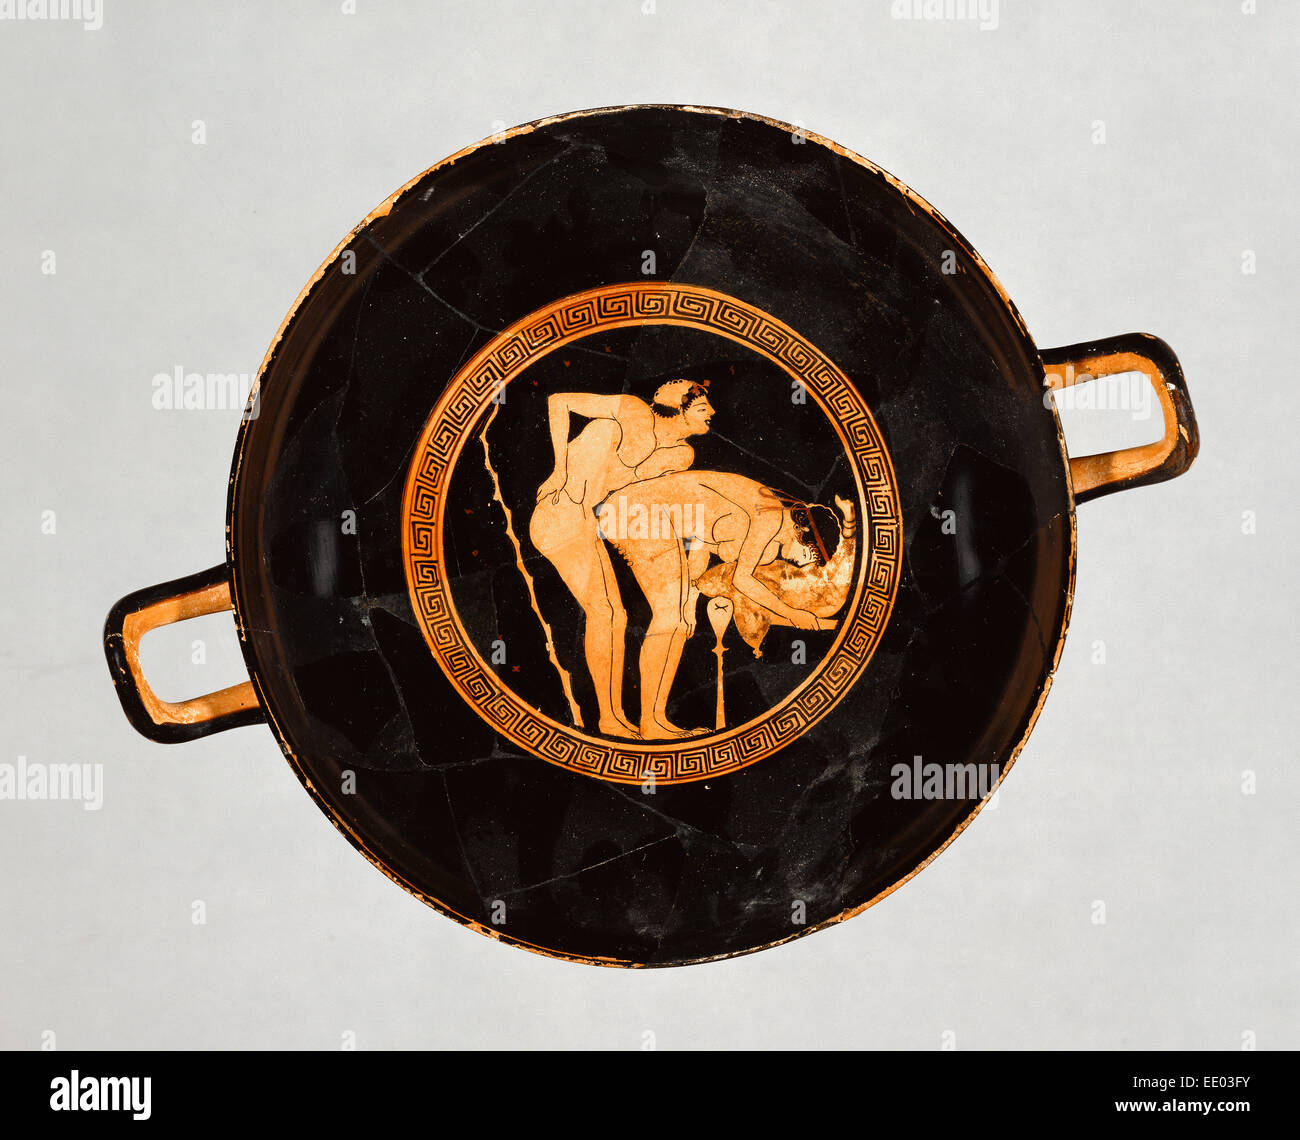 Attic Red-Figure Cup; Foundry Painter, Greek (Attic), active 500 - 470 B.C.; Athens, Greece, Europe; about 470 B.C.; Stock Photo